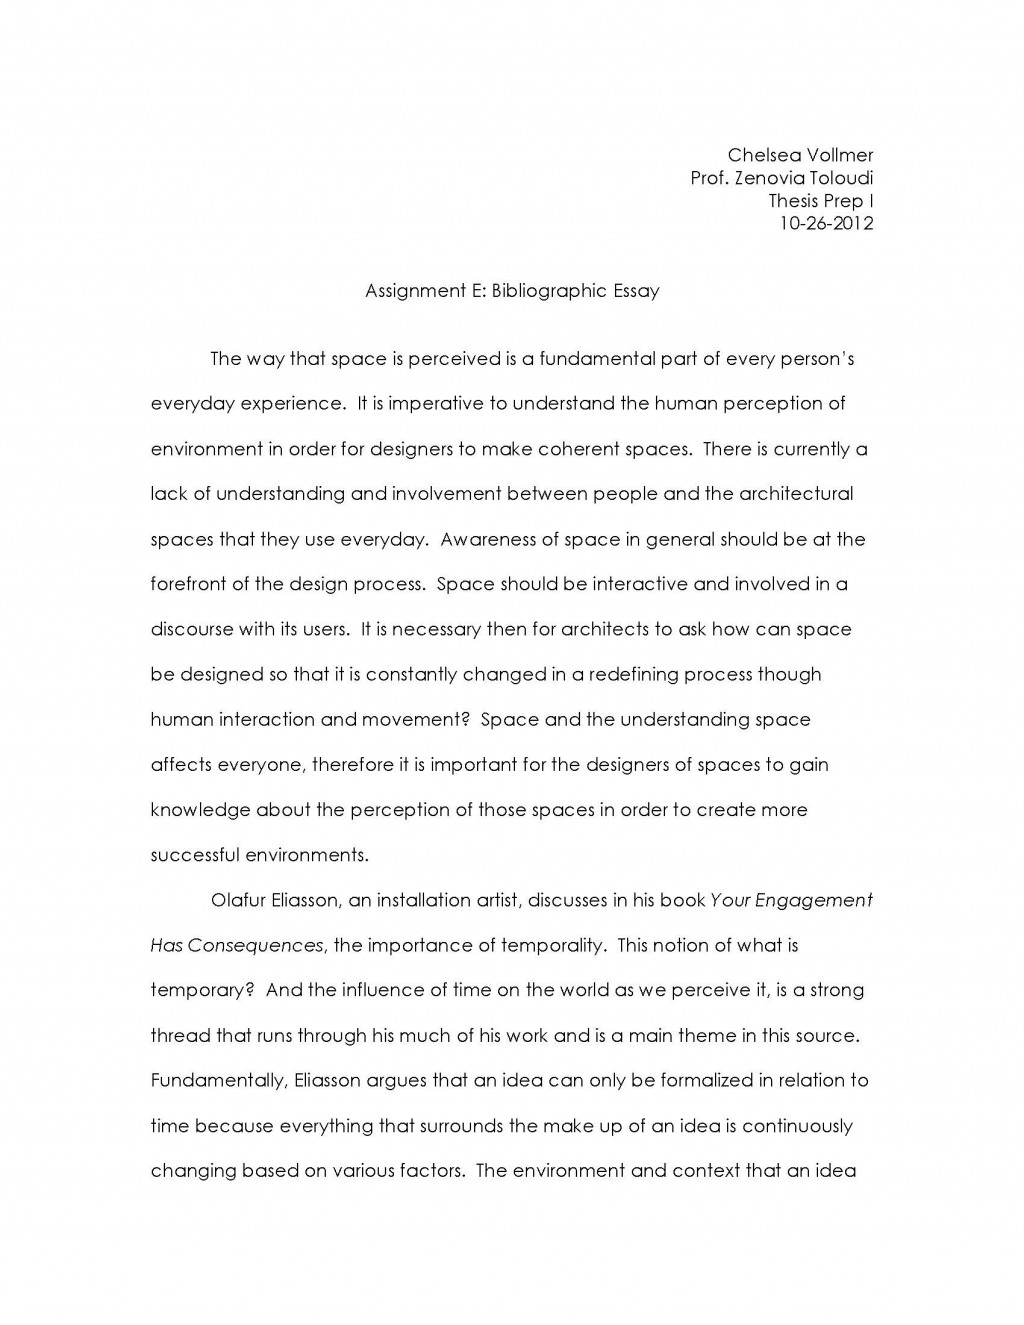 013 Essay Example Assignment E Page 12 Satire Fearsome Essays About High School Examples On Gun Control Large